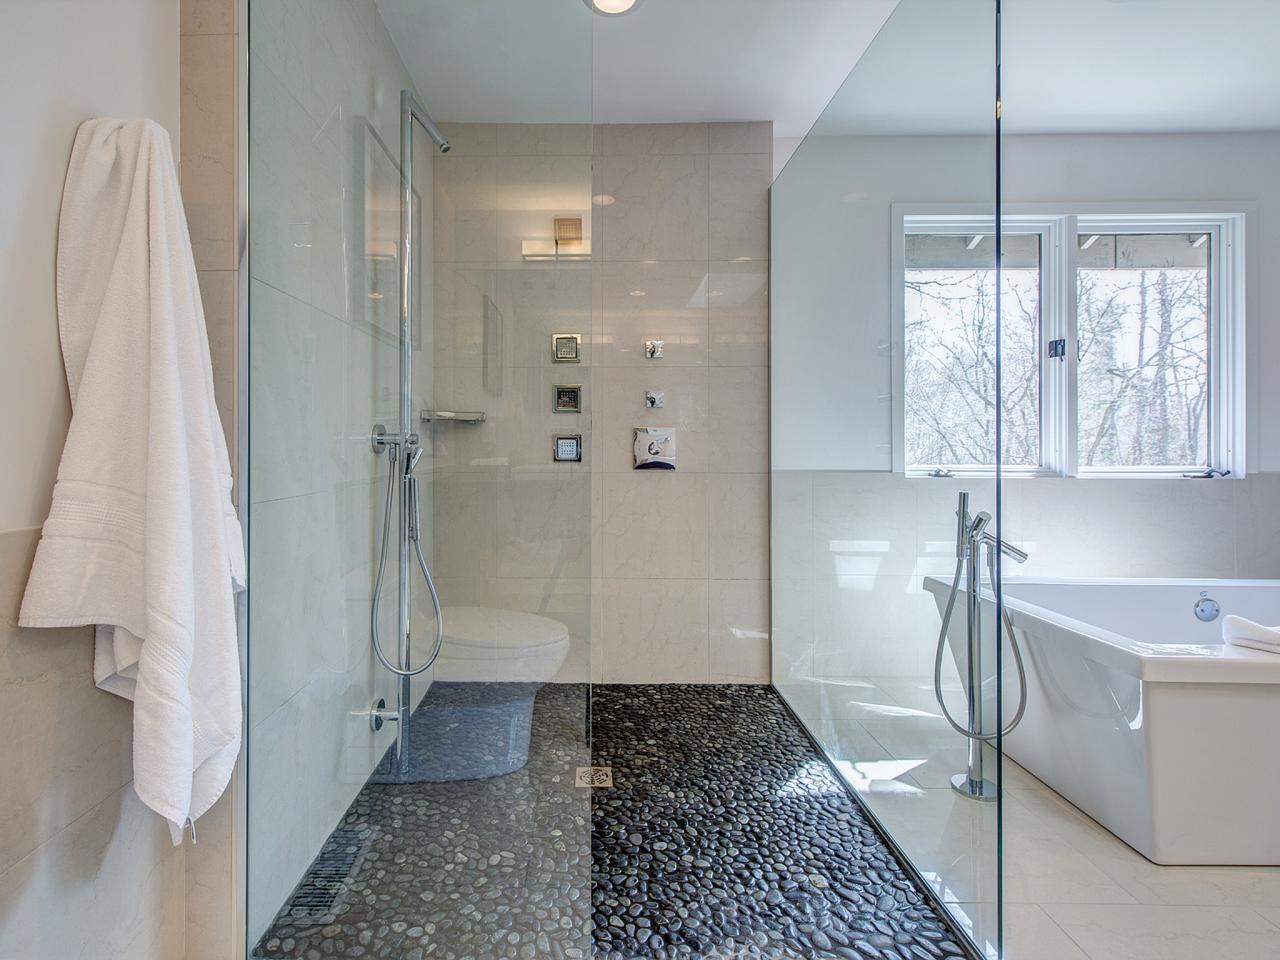 RS_Joni-Spear-white-contemporary-bathroom-shower_h.jpg.rend.hgtvcom.1280.960